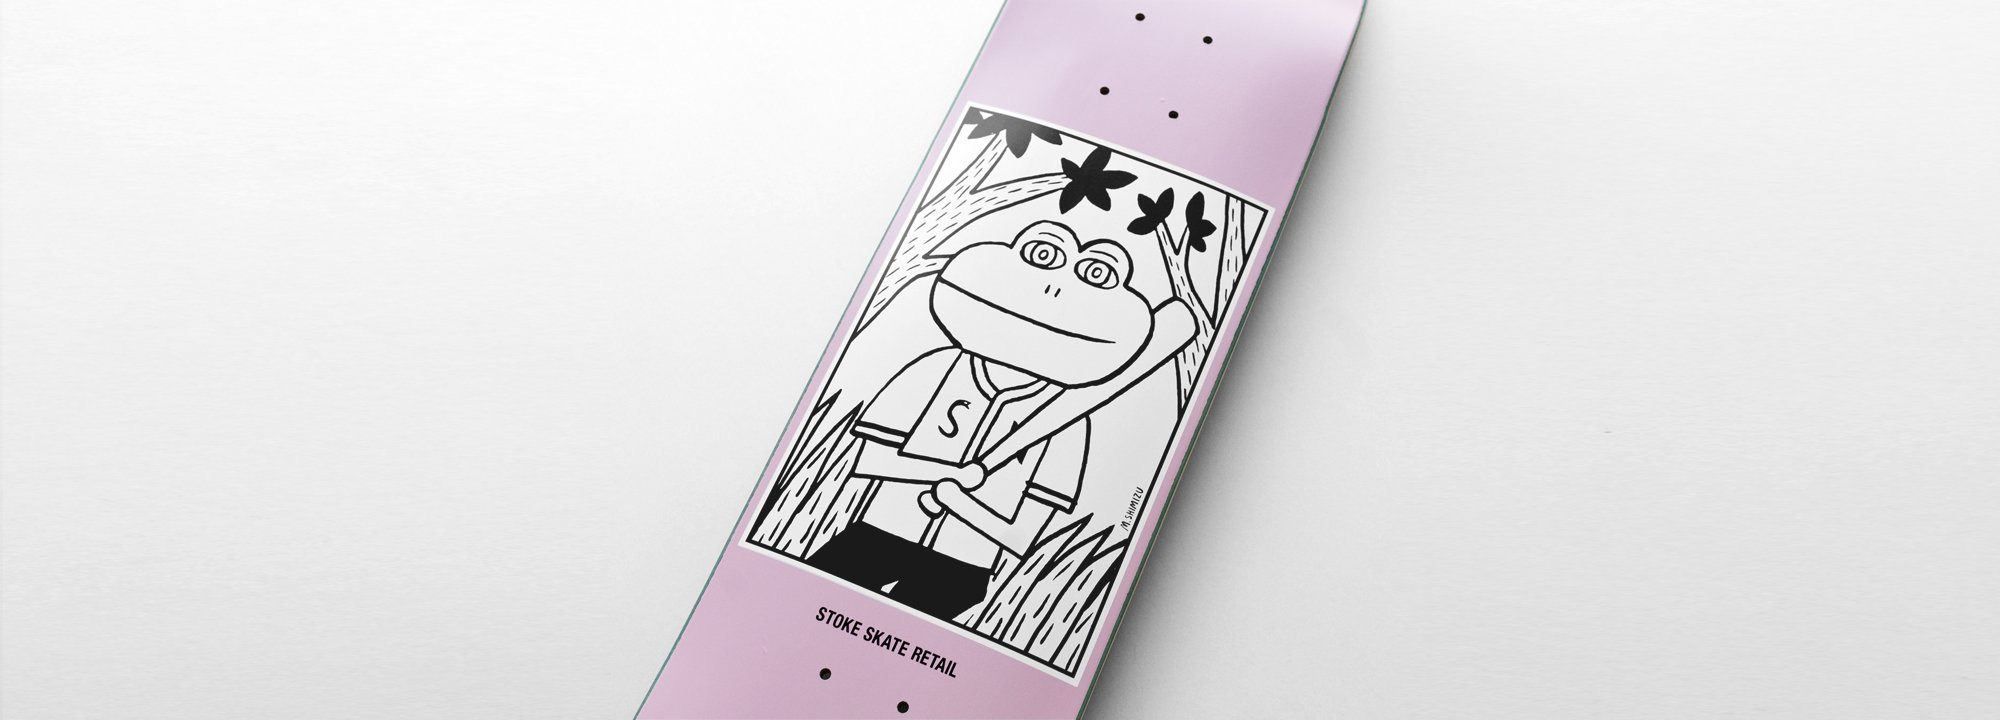 Original Skate Deck by Stoke &quot;Frog Jonny&quot;<img class='new_mark_img2' src='//img.shop-pro.jp/img/new/icons5.gif' style='border:none;display:inline;margin:0px;padding:0px;width:auto;' />